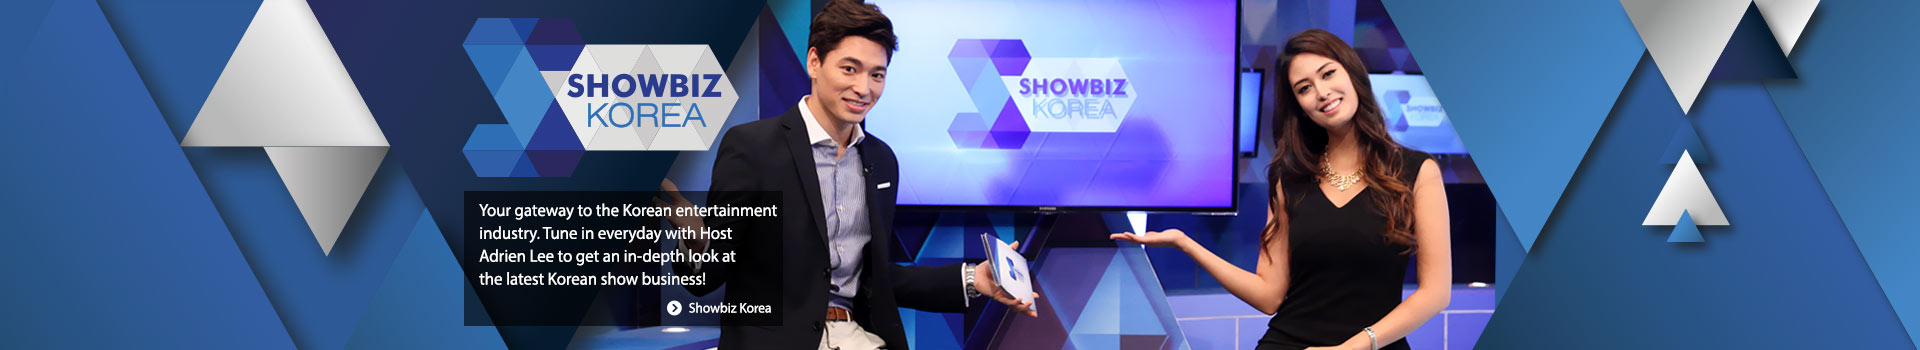 Showbiz_Korea